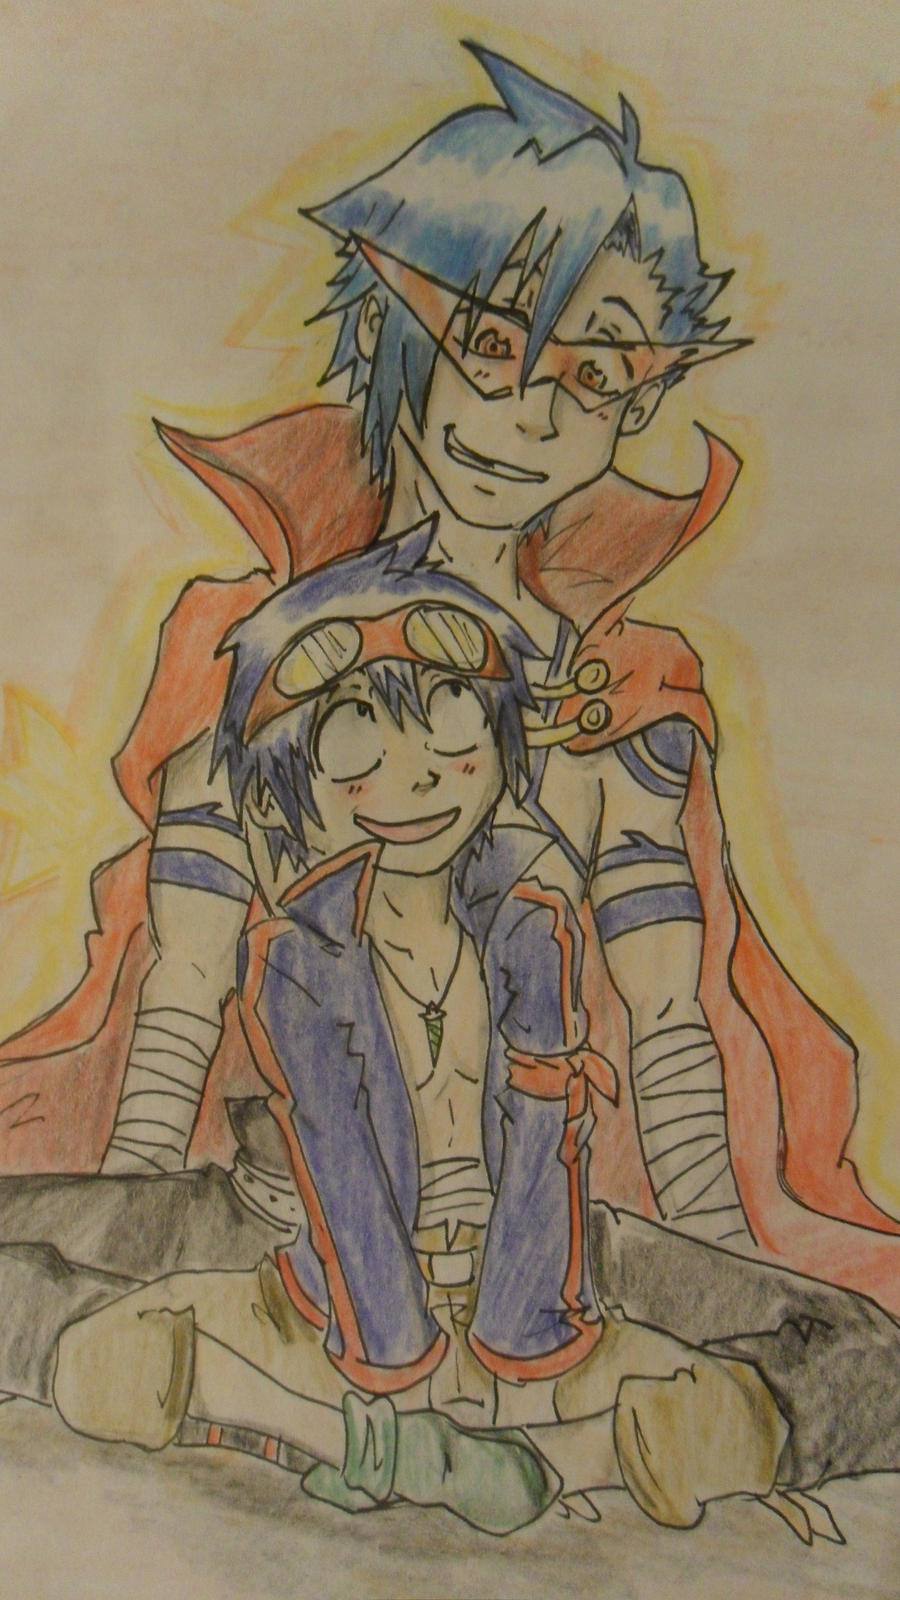 Kamina and Simon. by Hukkis on DeviantArt